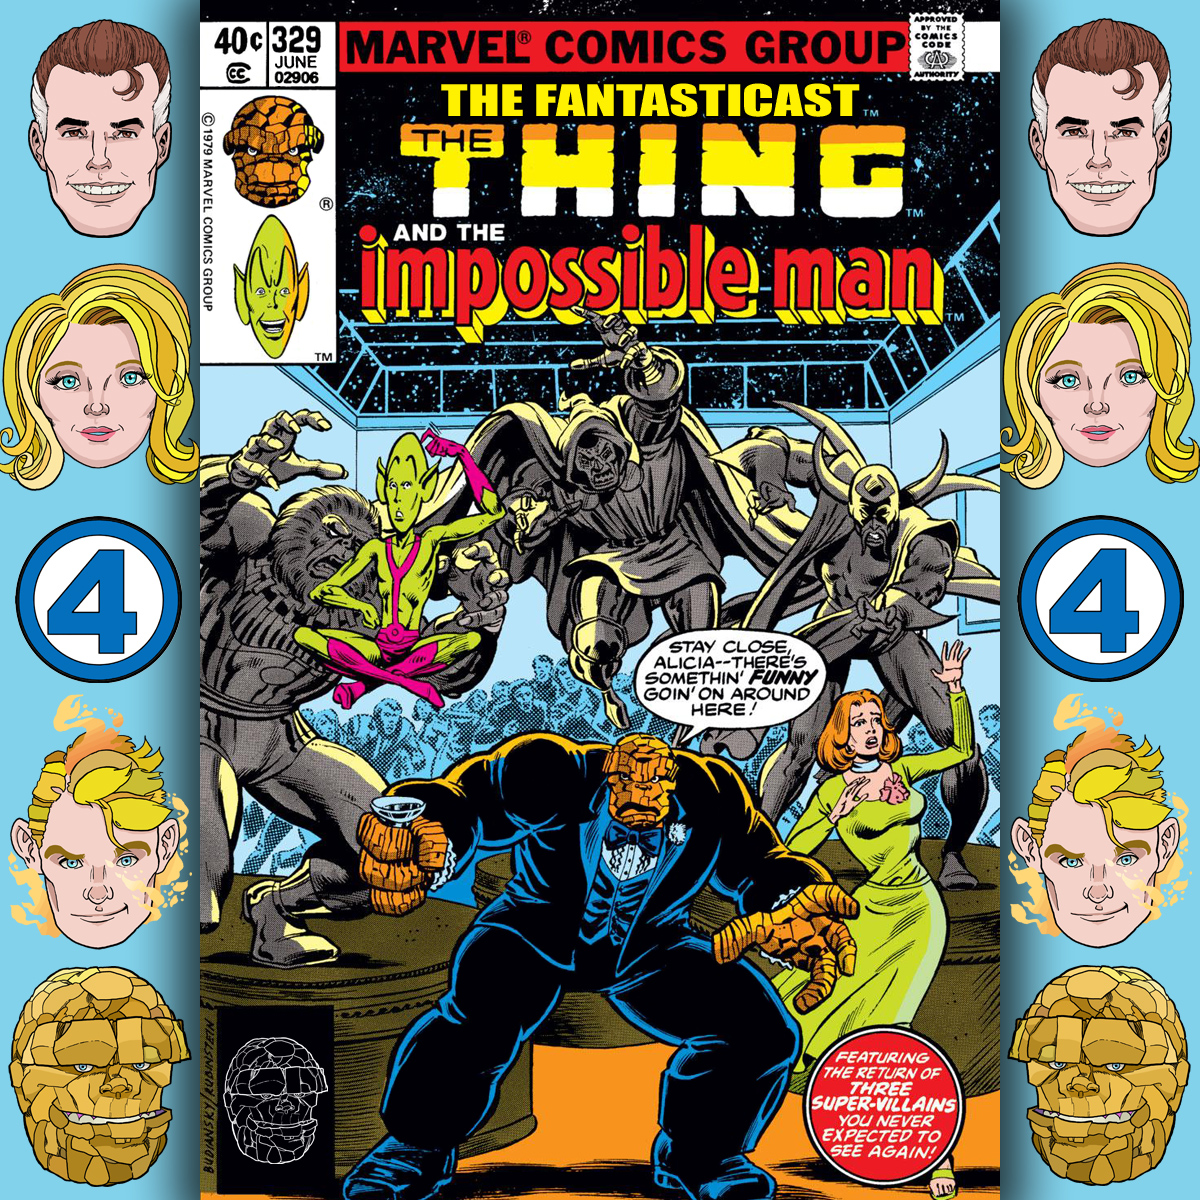 The Fantasticast Episode 329